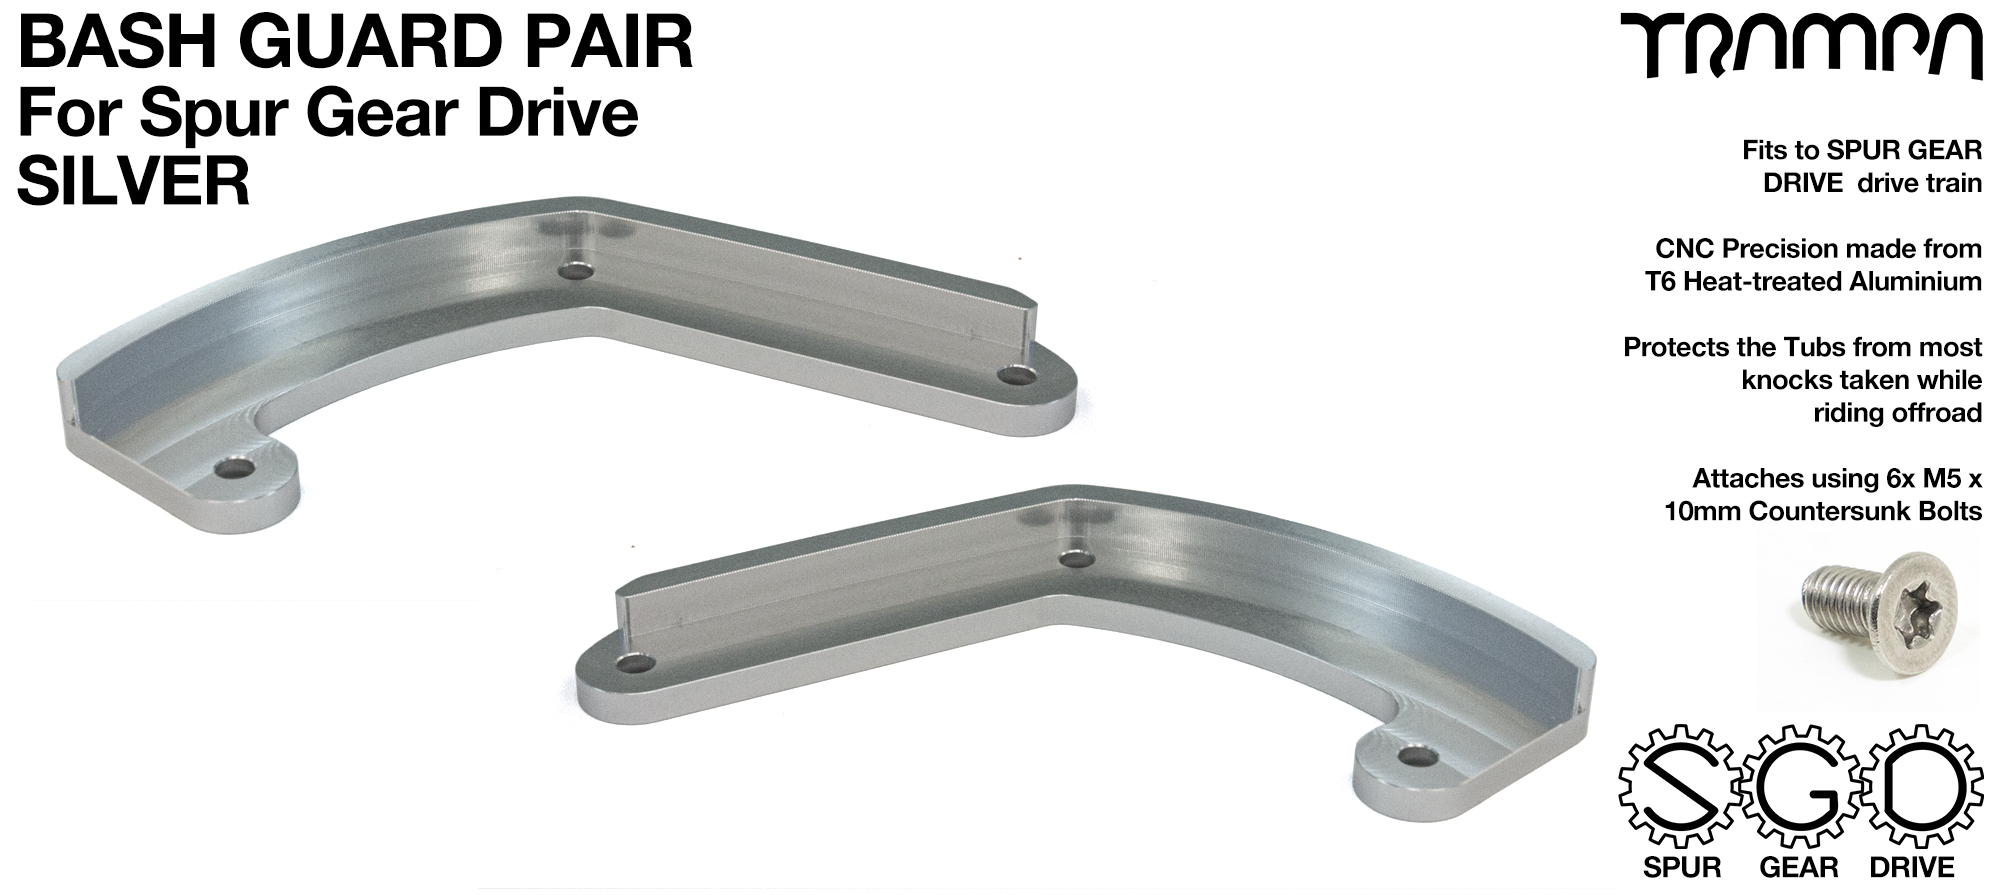 MkII Spur Gear Drive Bash Guards PAIR - SILVER